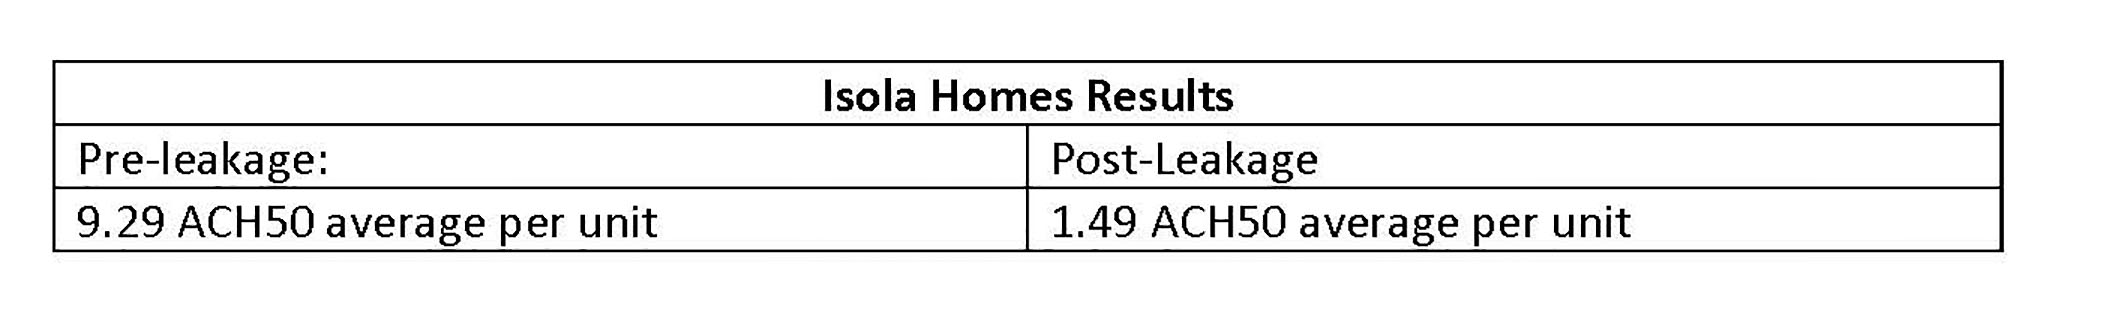 Isola Homes Results resize